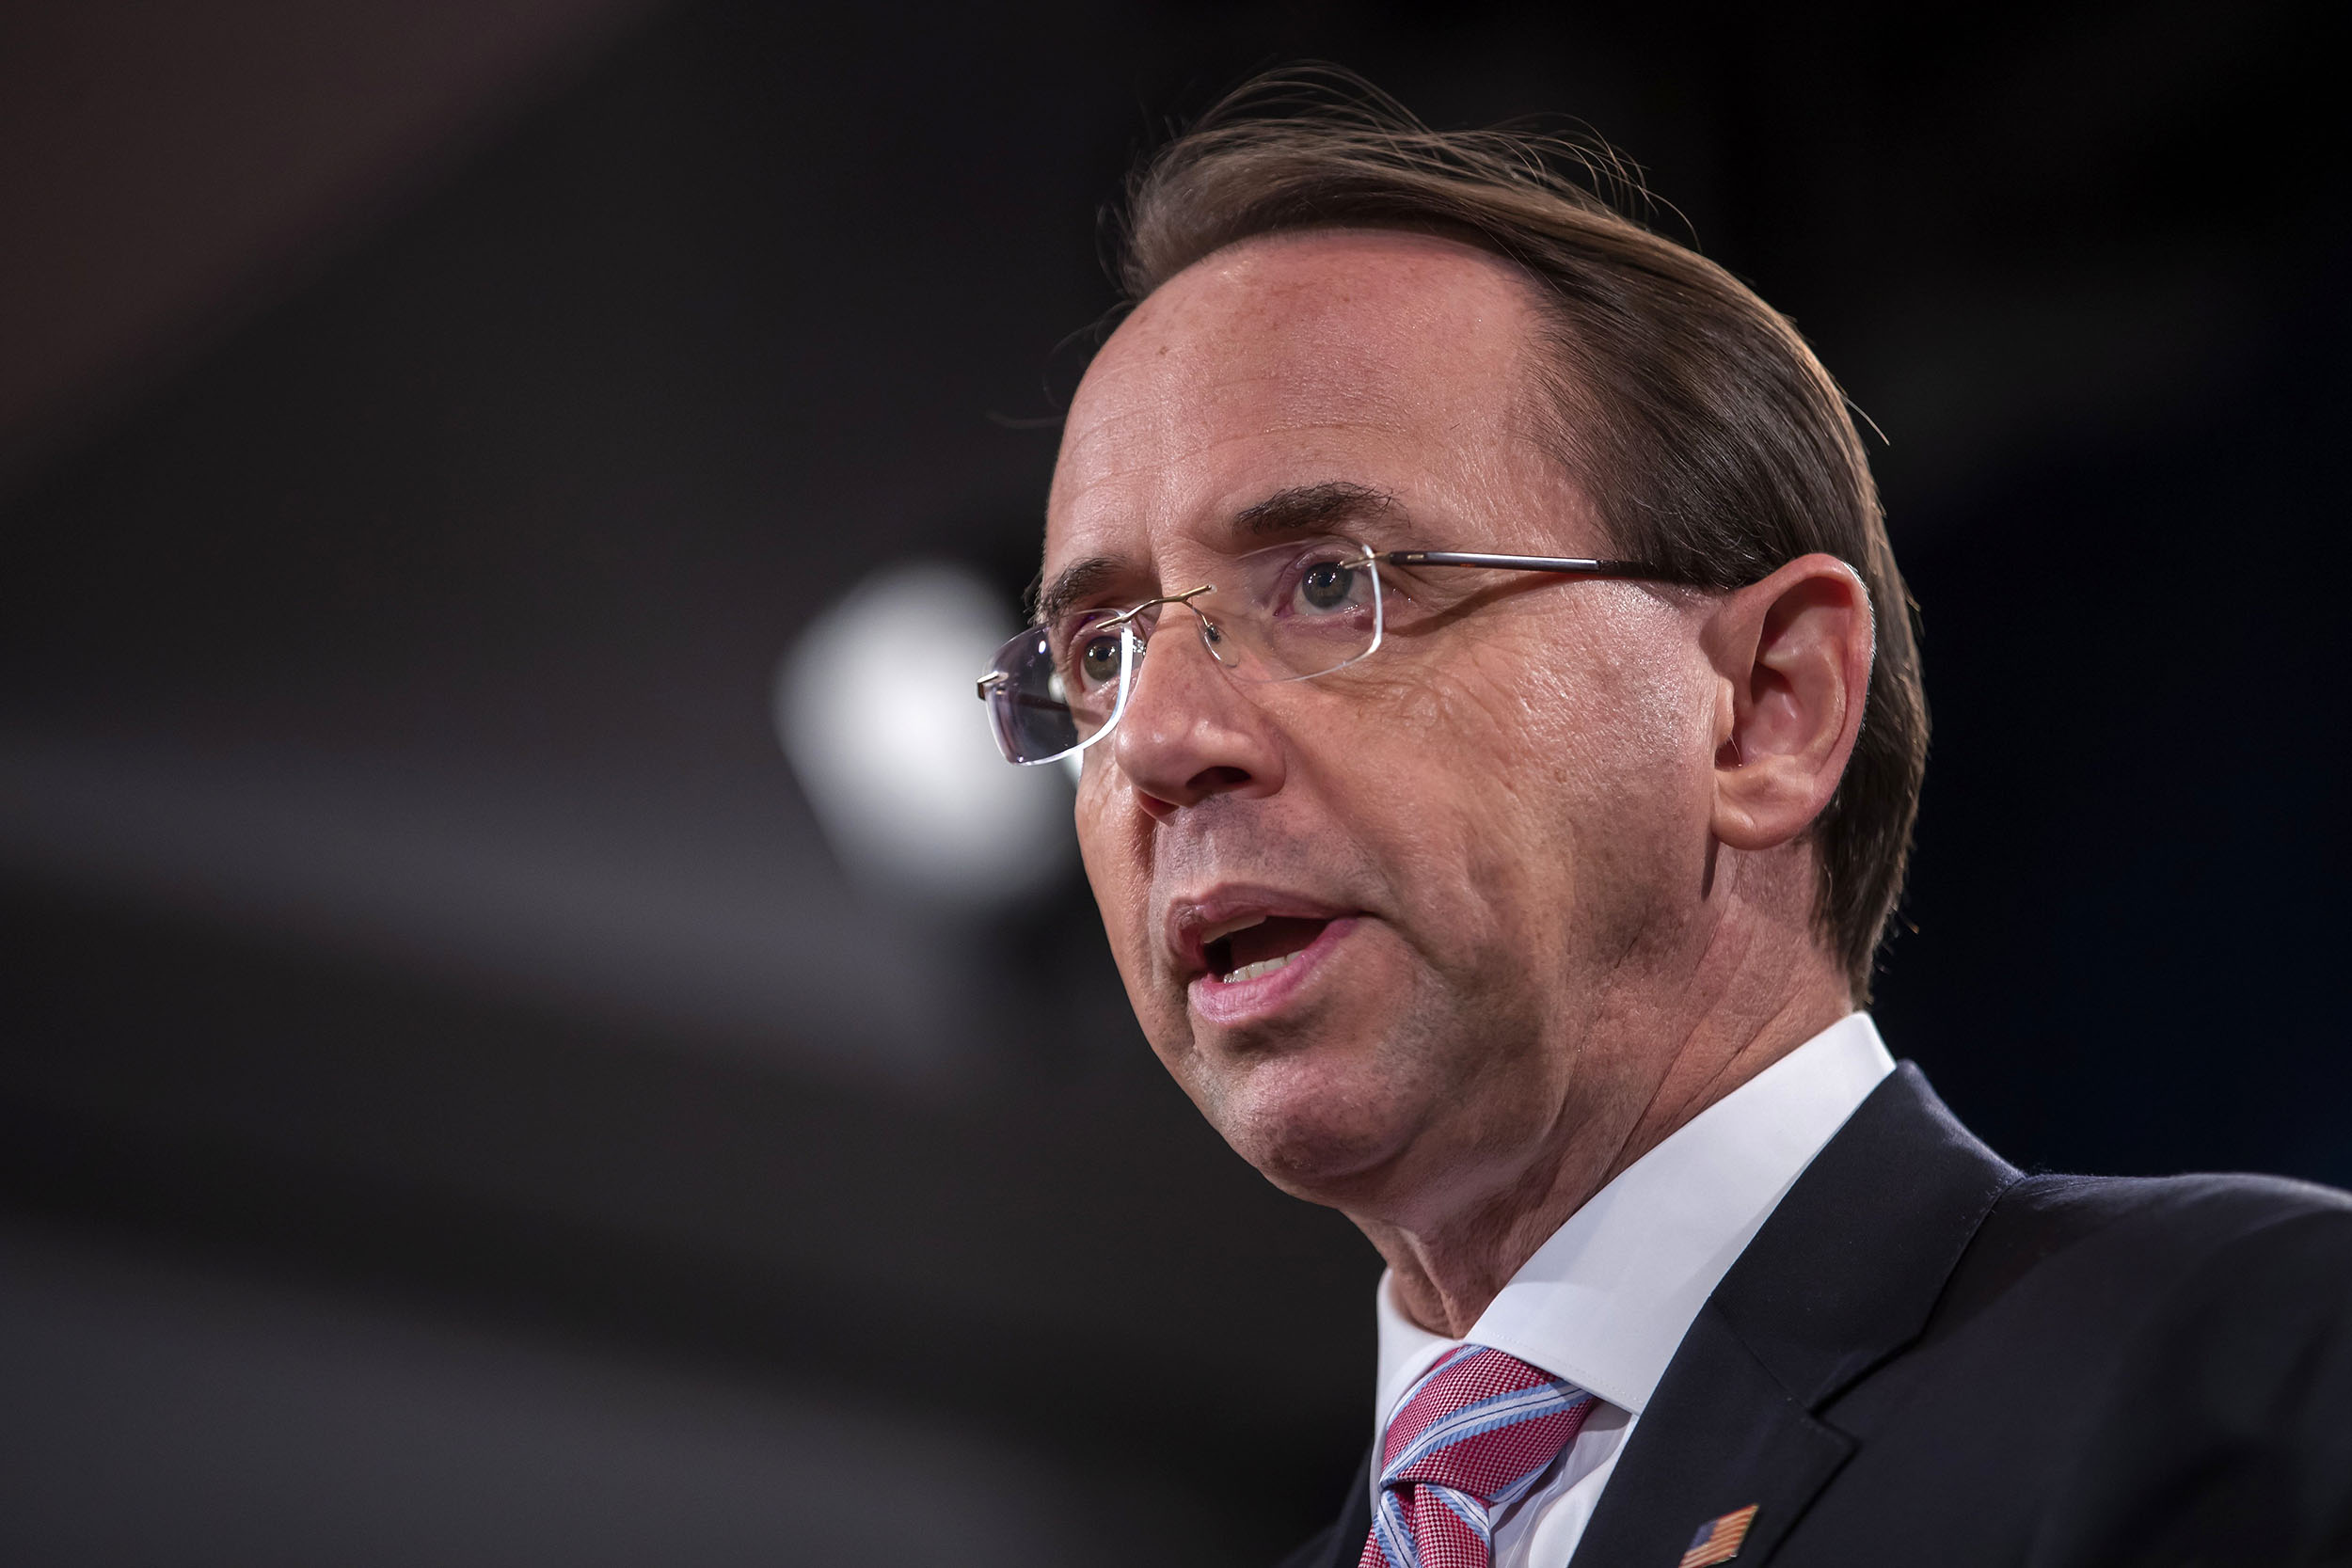 Rosenstein,-who-oversees-Mueller's-probe,-plans-to-leave-in-the-coming-weeks